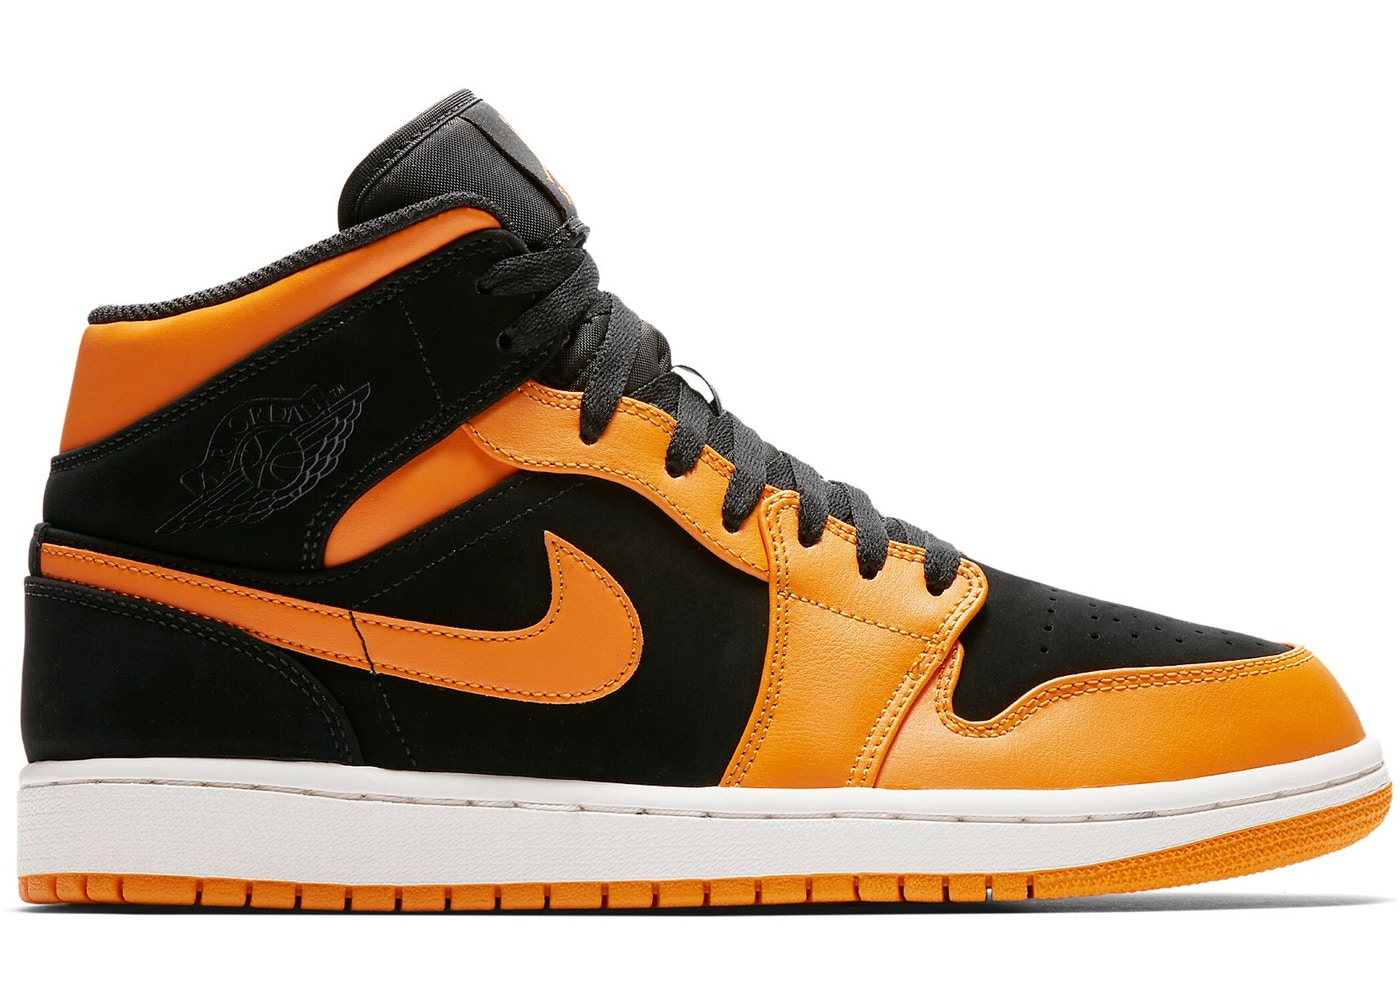 3fca0b9993de Jordan 1 Mid Black Orange Peel - 554724-081